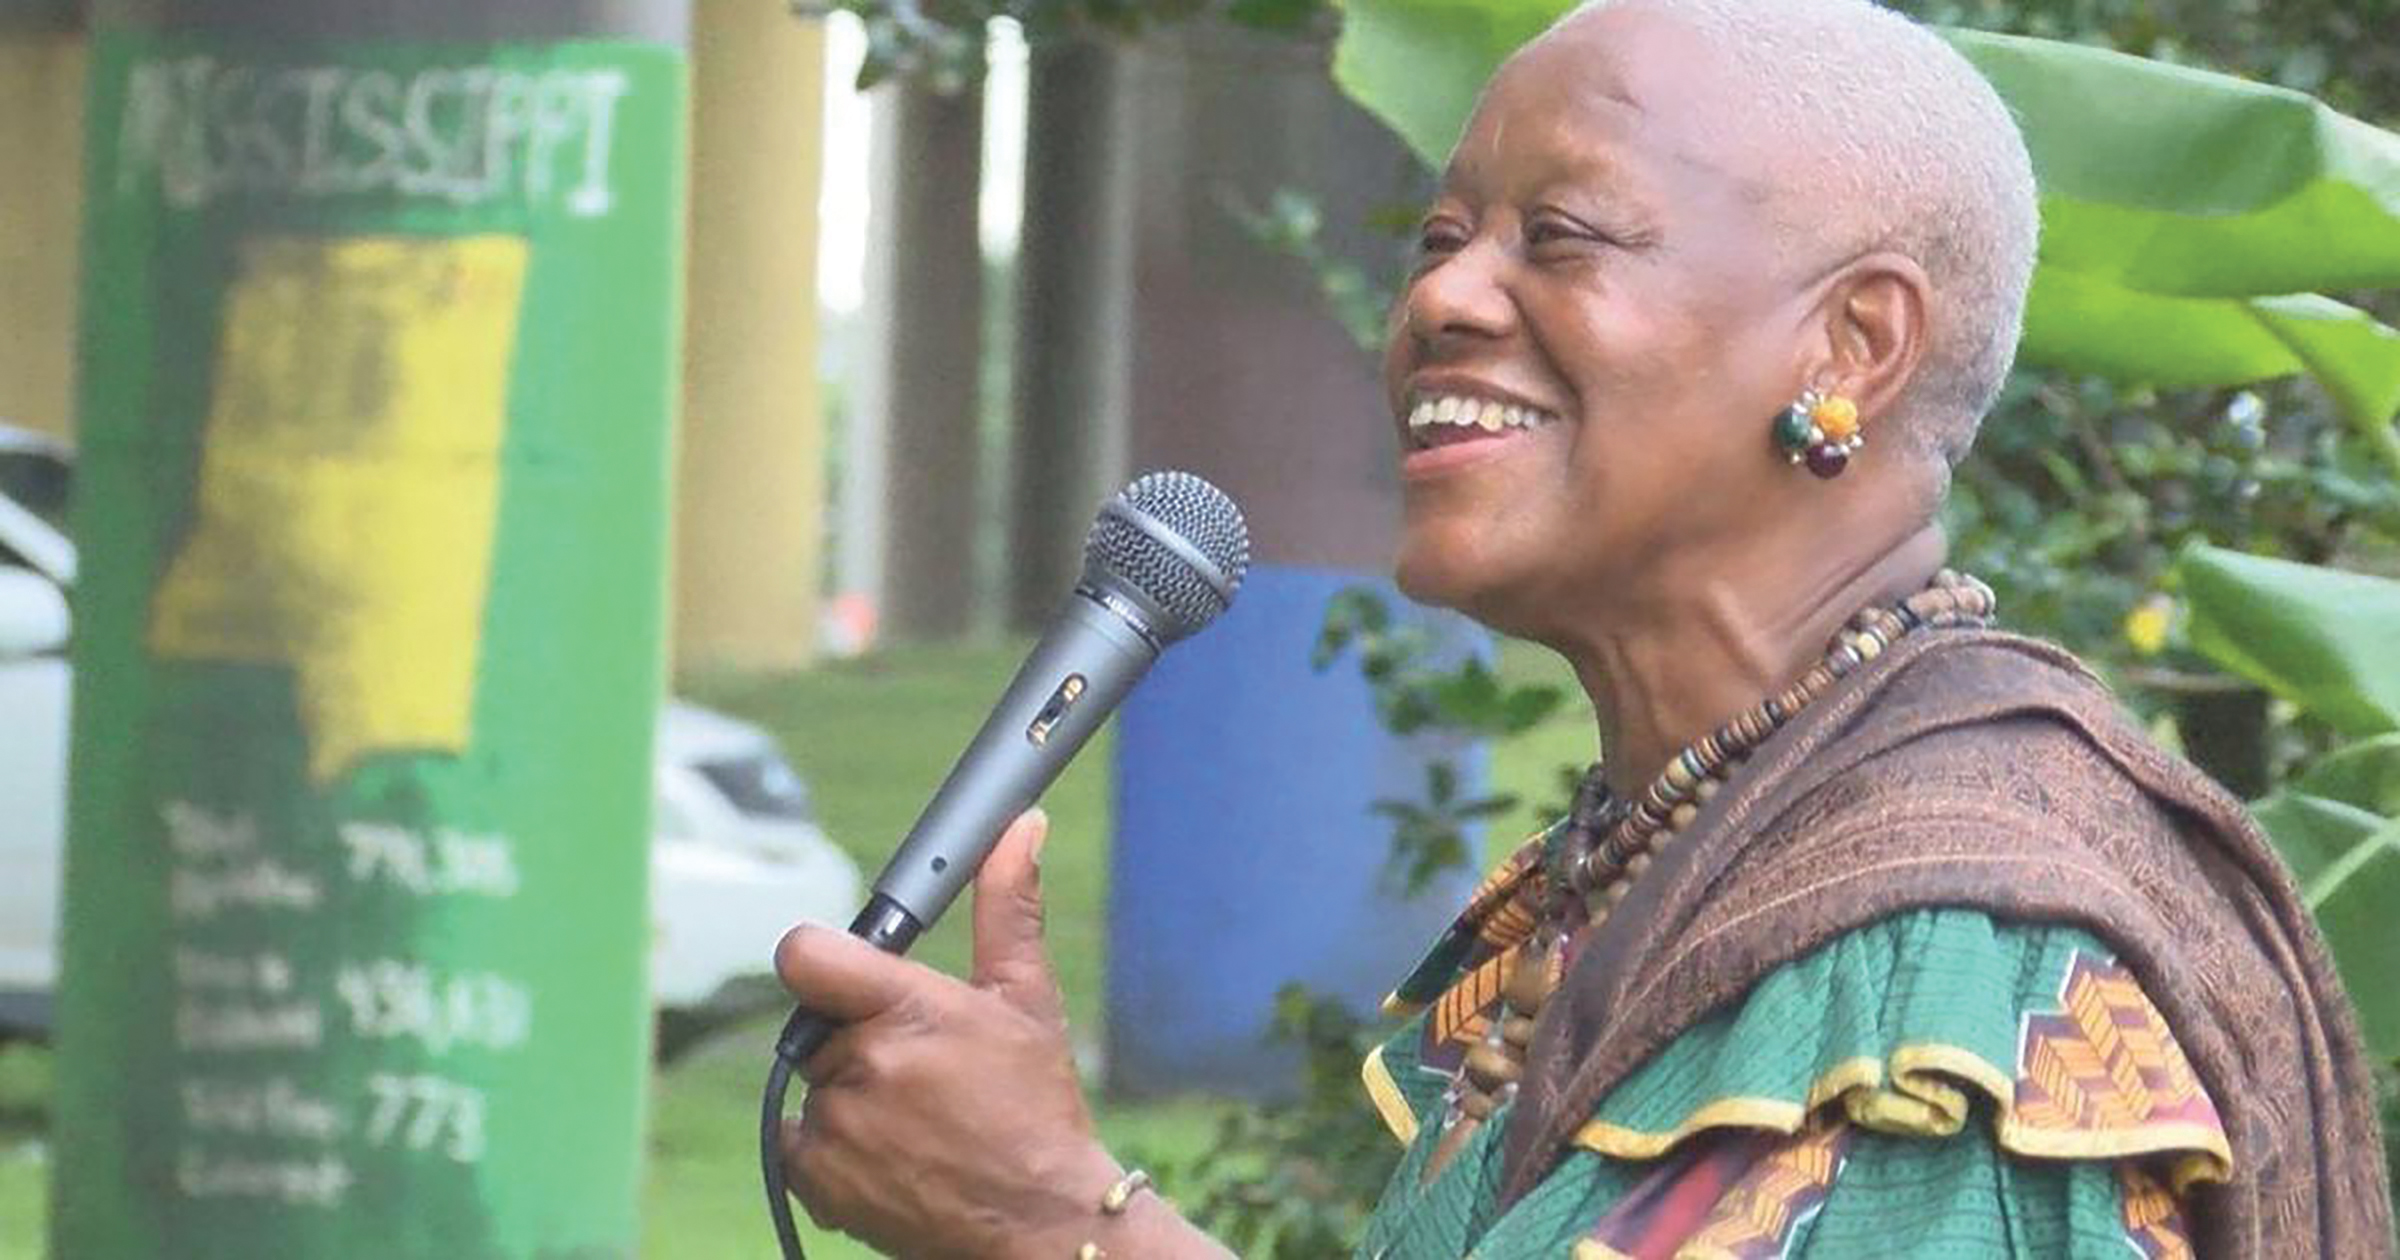 African-American history museum founder Sadie Roberts-Joseph found dead in the trunk of a car in Baton Rouge, Louisiana. (Courtesy photo/CBS News)